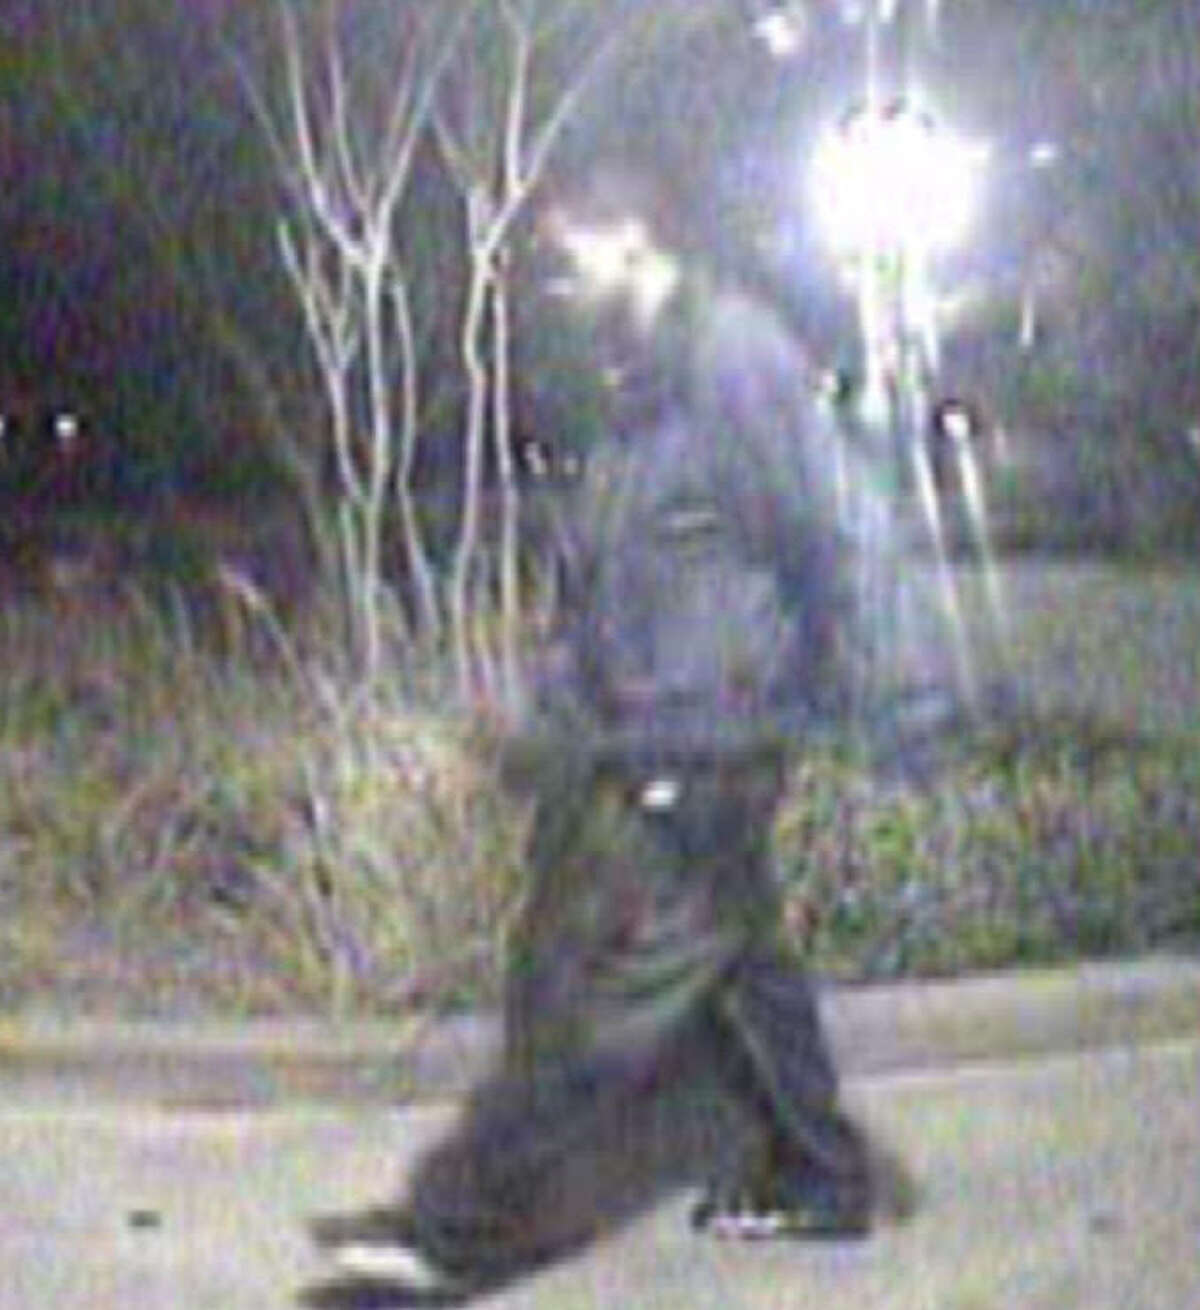 Bellaire Police believe the person seen in this surveillance camera footage is the gunman responsible for the shooting death of 19-year-old James Mielke at Reginellis Pizzeria on Feb. 21, 2016.